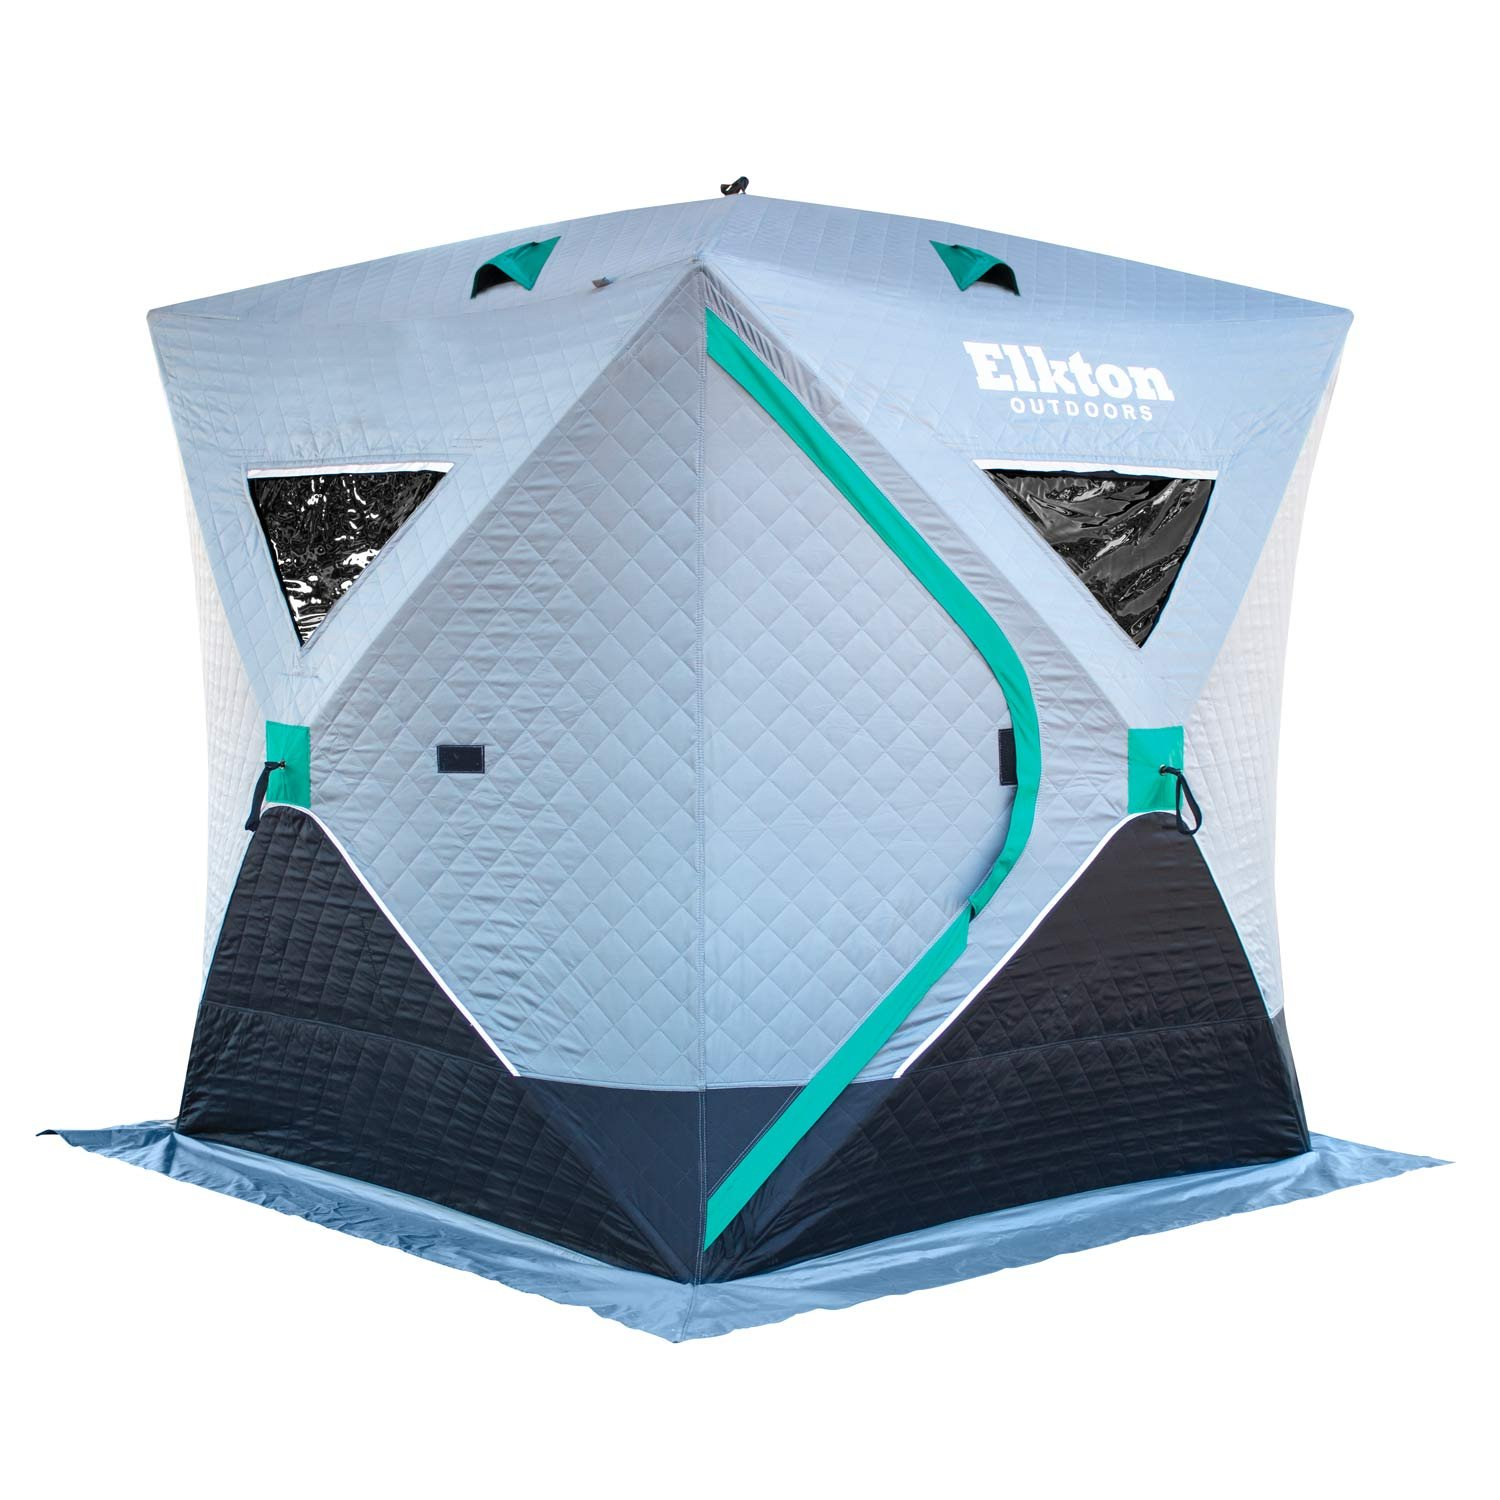 Elkton Outdoors Insulated Portable 3-Person Insulated Ice Fishing Tent With Ventilation Windows & Carry Pack: Ice Fishing Shelter Includes Tent, Carry Pack, Ice Anchors & Storage Compartments! by Elkton Outdoors